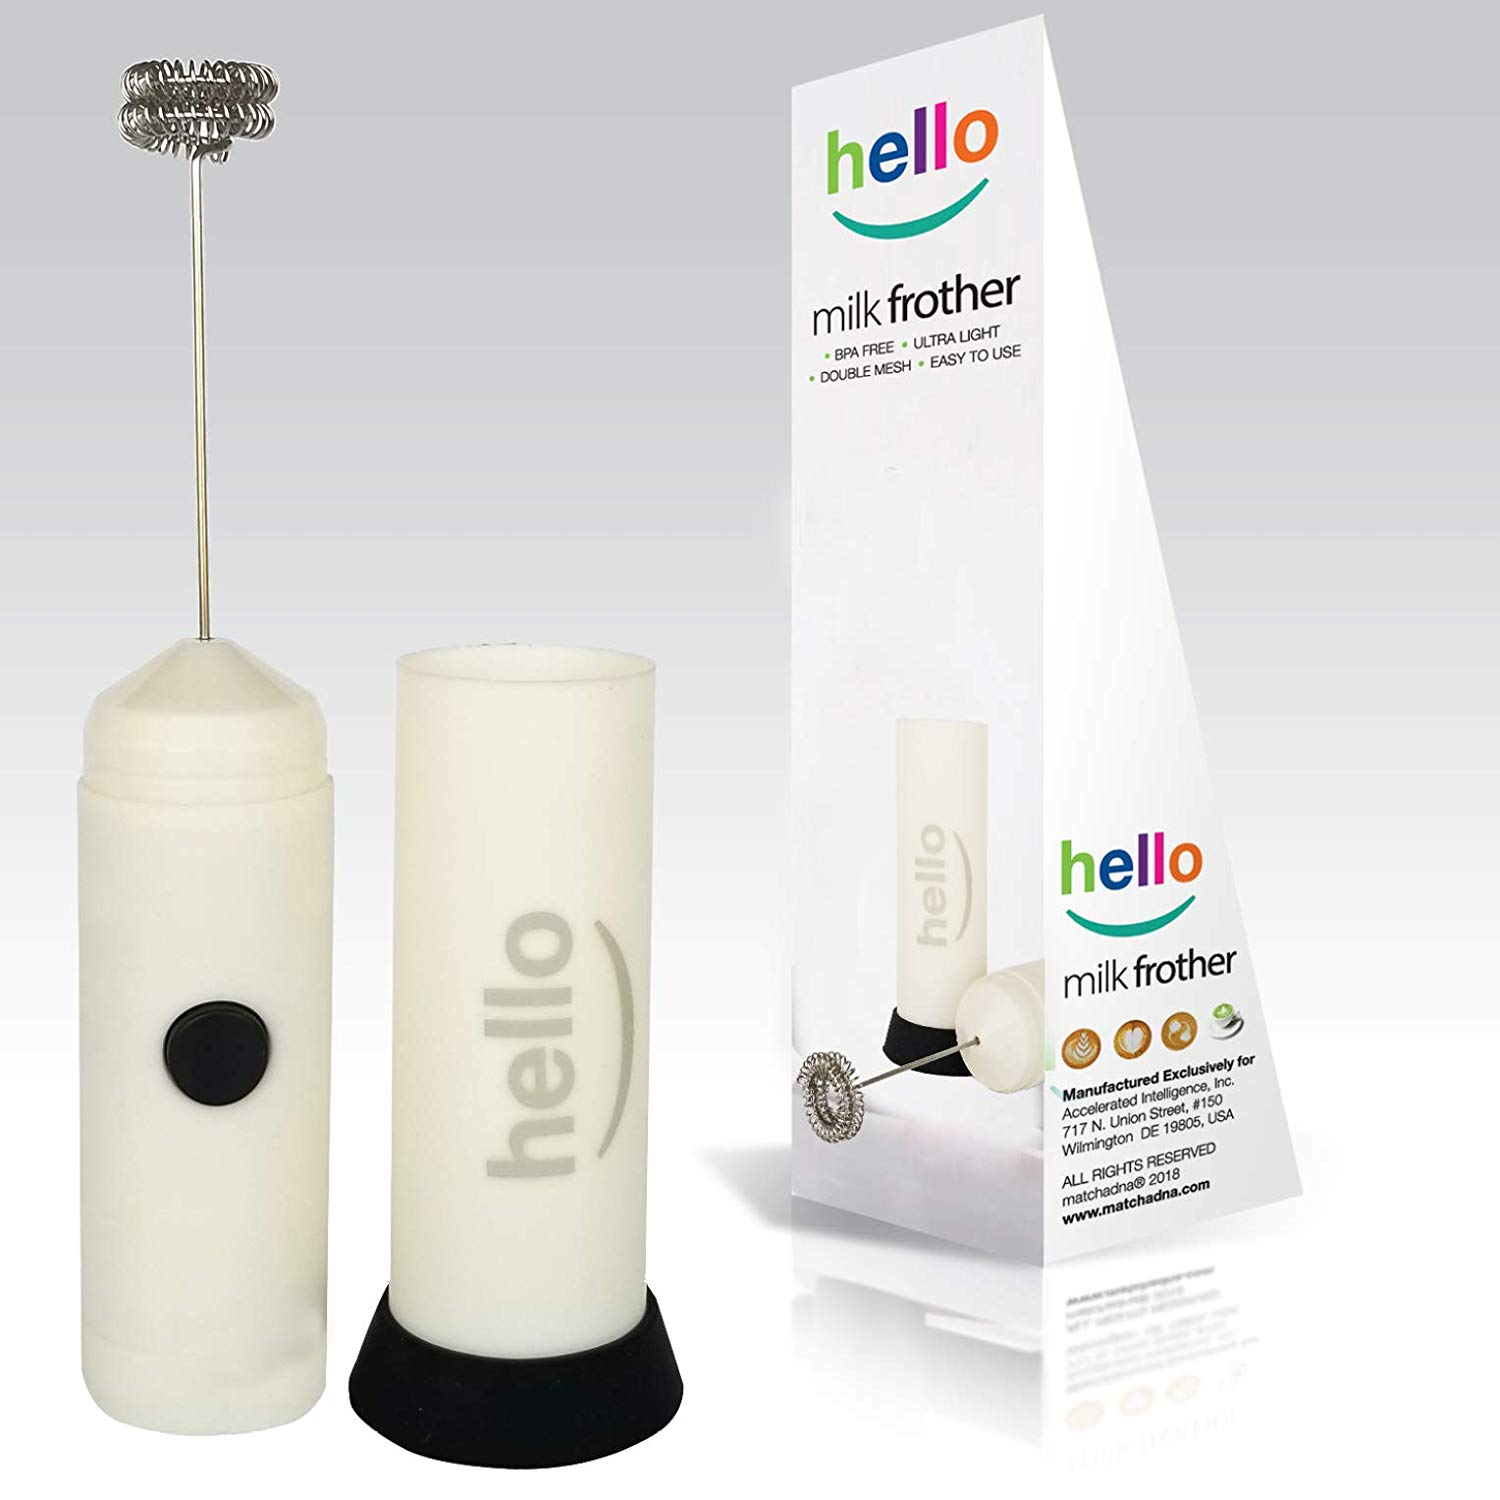 MatchaDNA Handheld Electric Milk Frother (Hello - White)